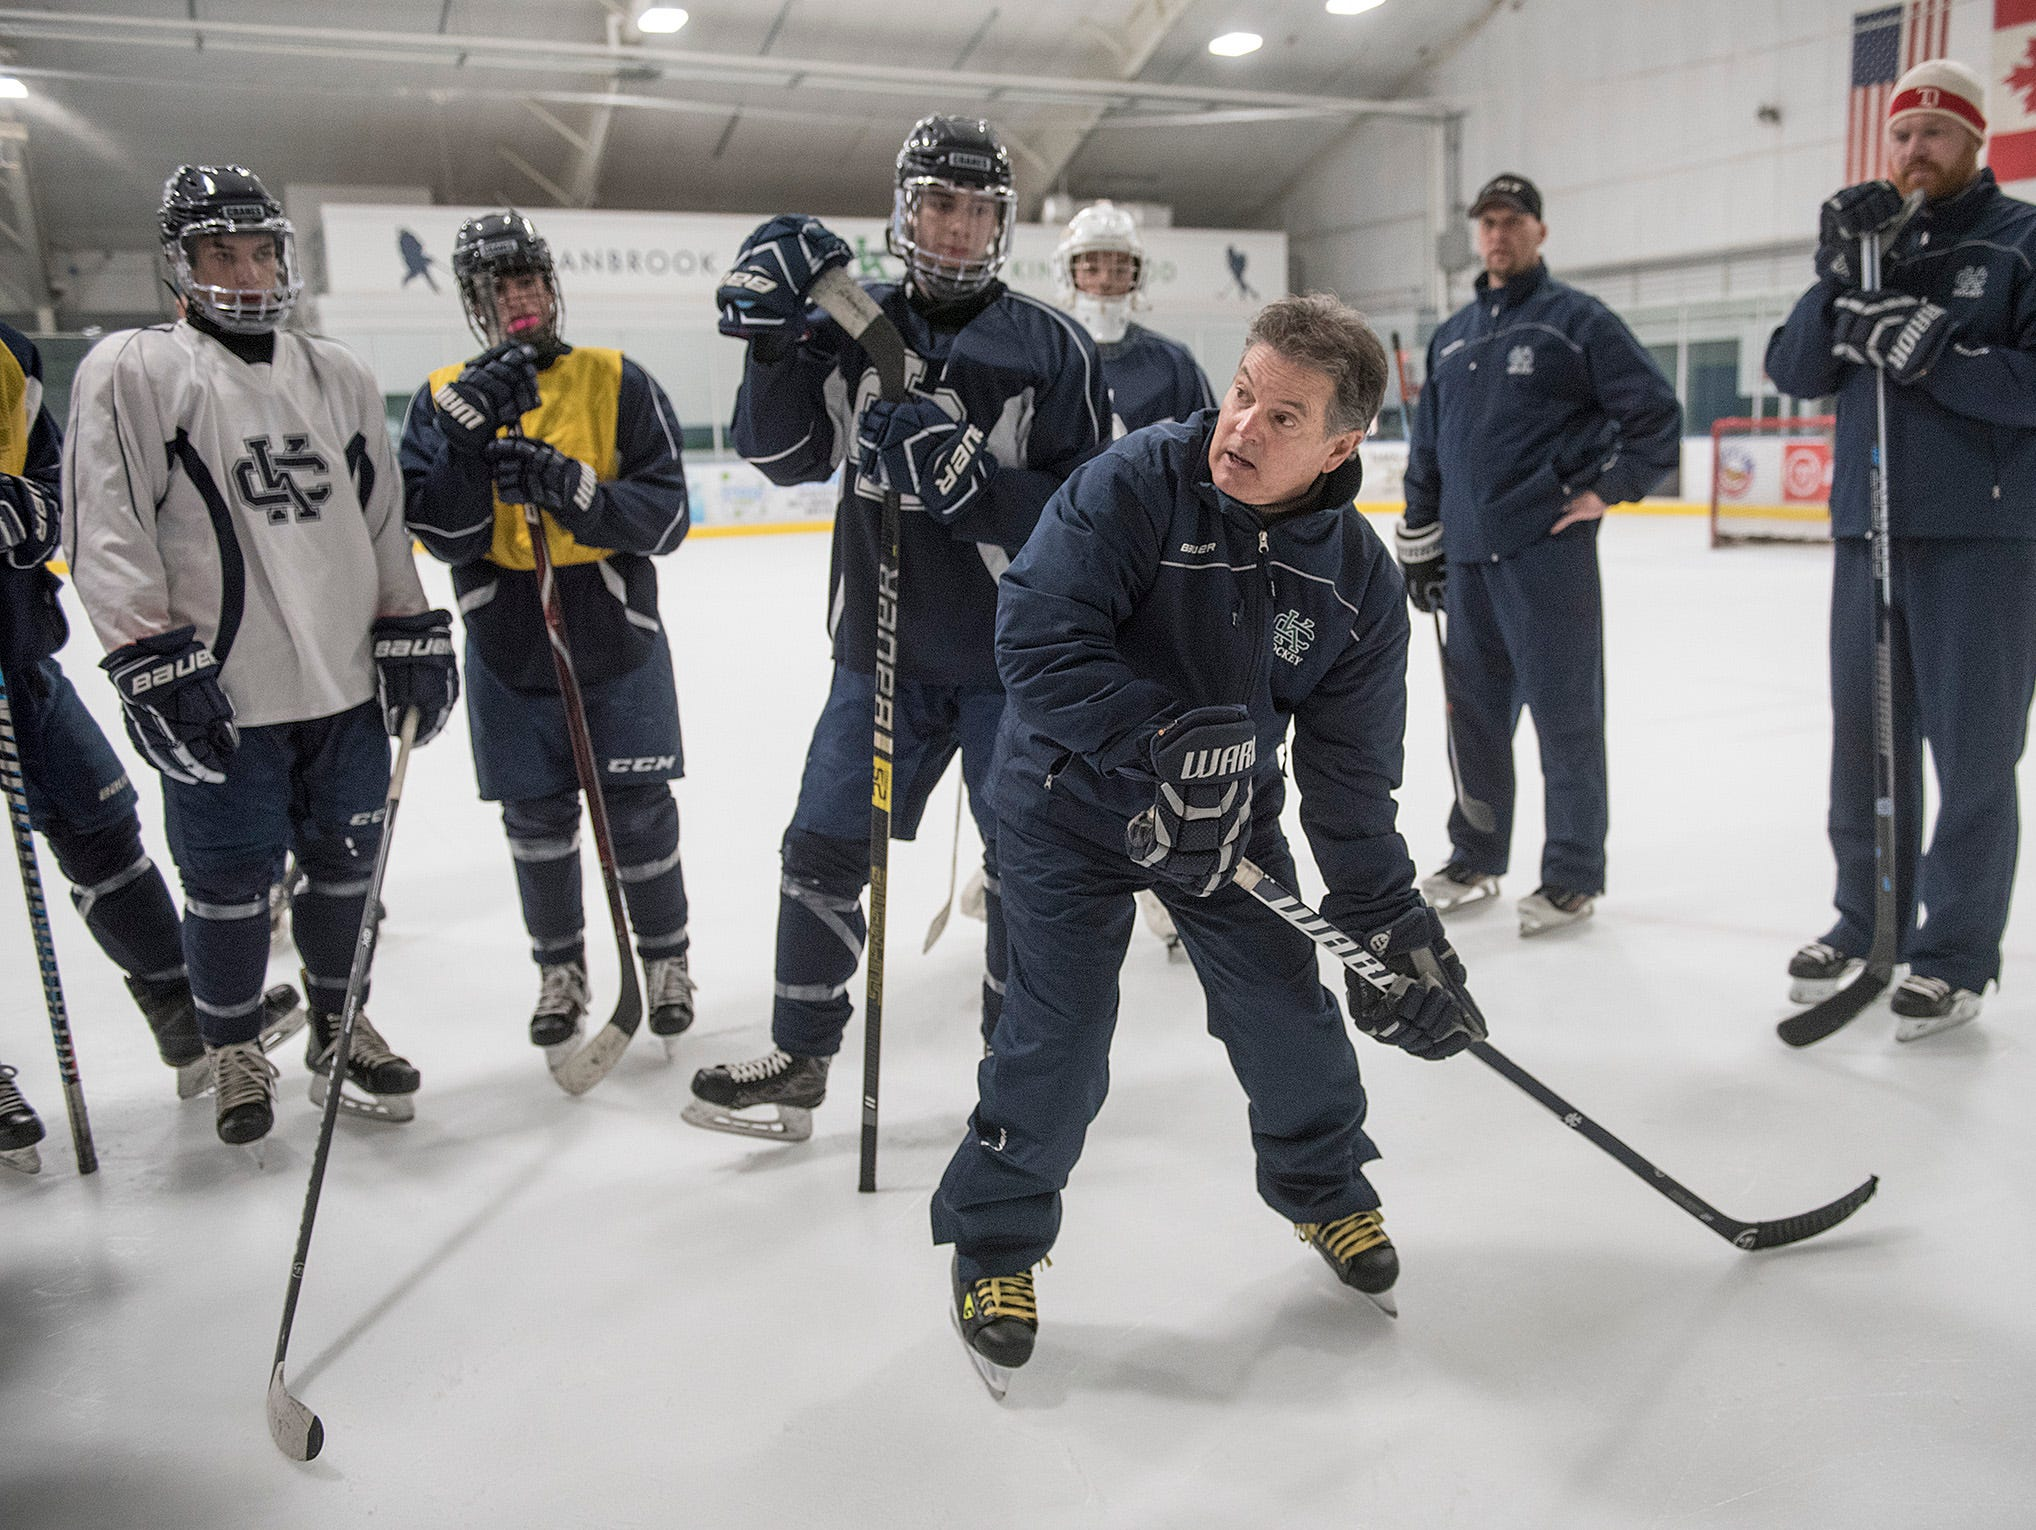 Cranbrook Hockey Coach Andy Weidenbach works with players during practice.